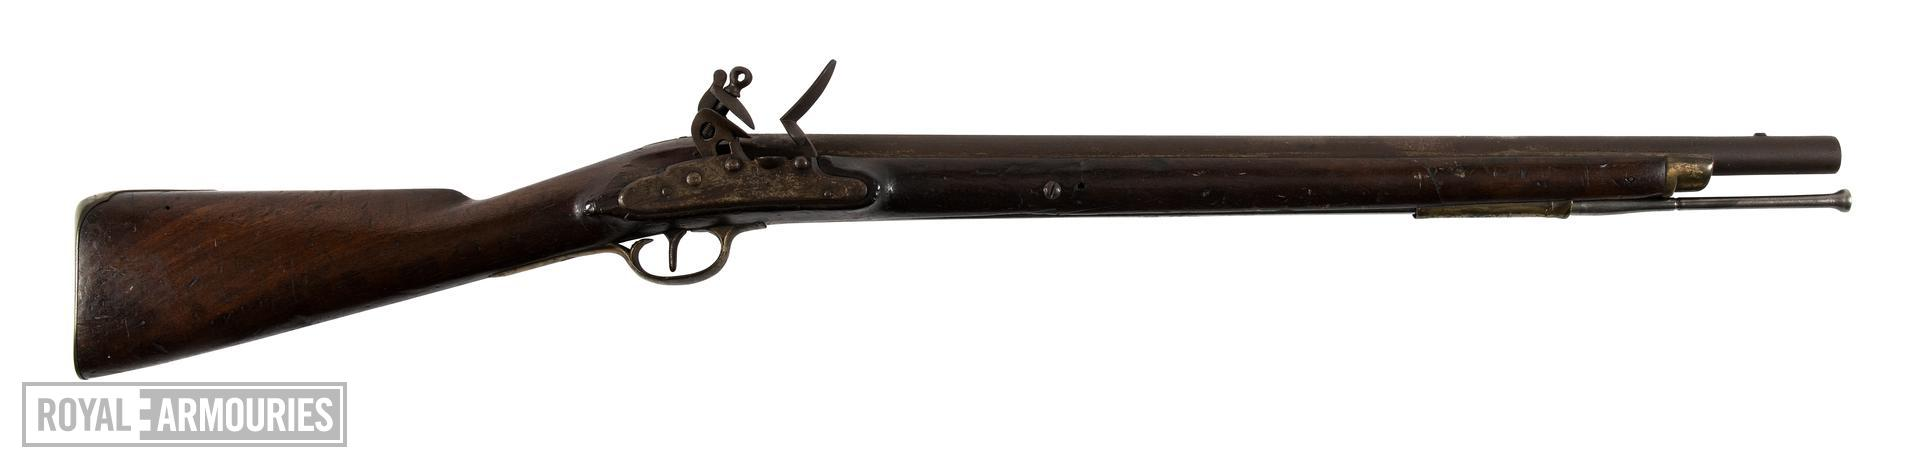 Flintlock military carbine - Pattern 1796 Heavy Dragoon Carbine With Nock's lock.